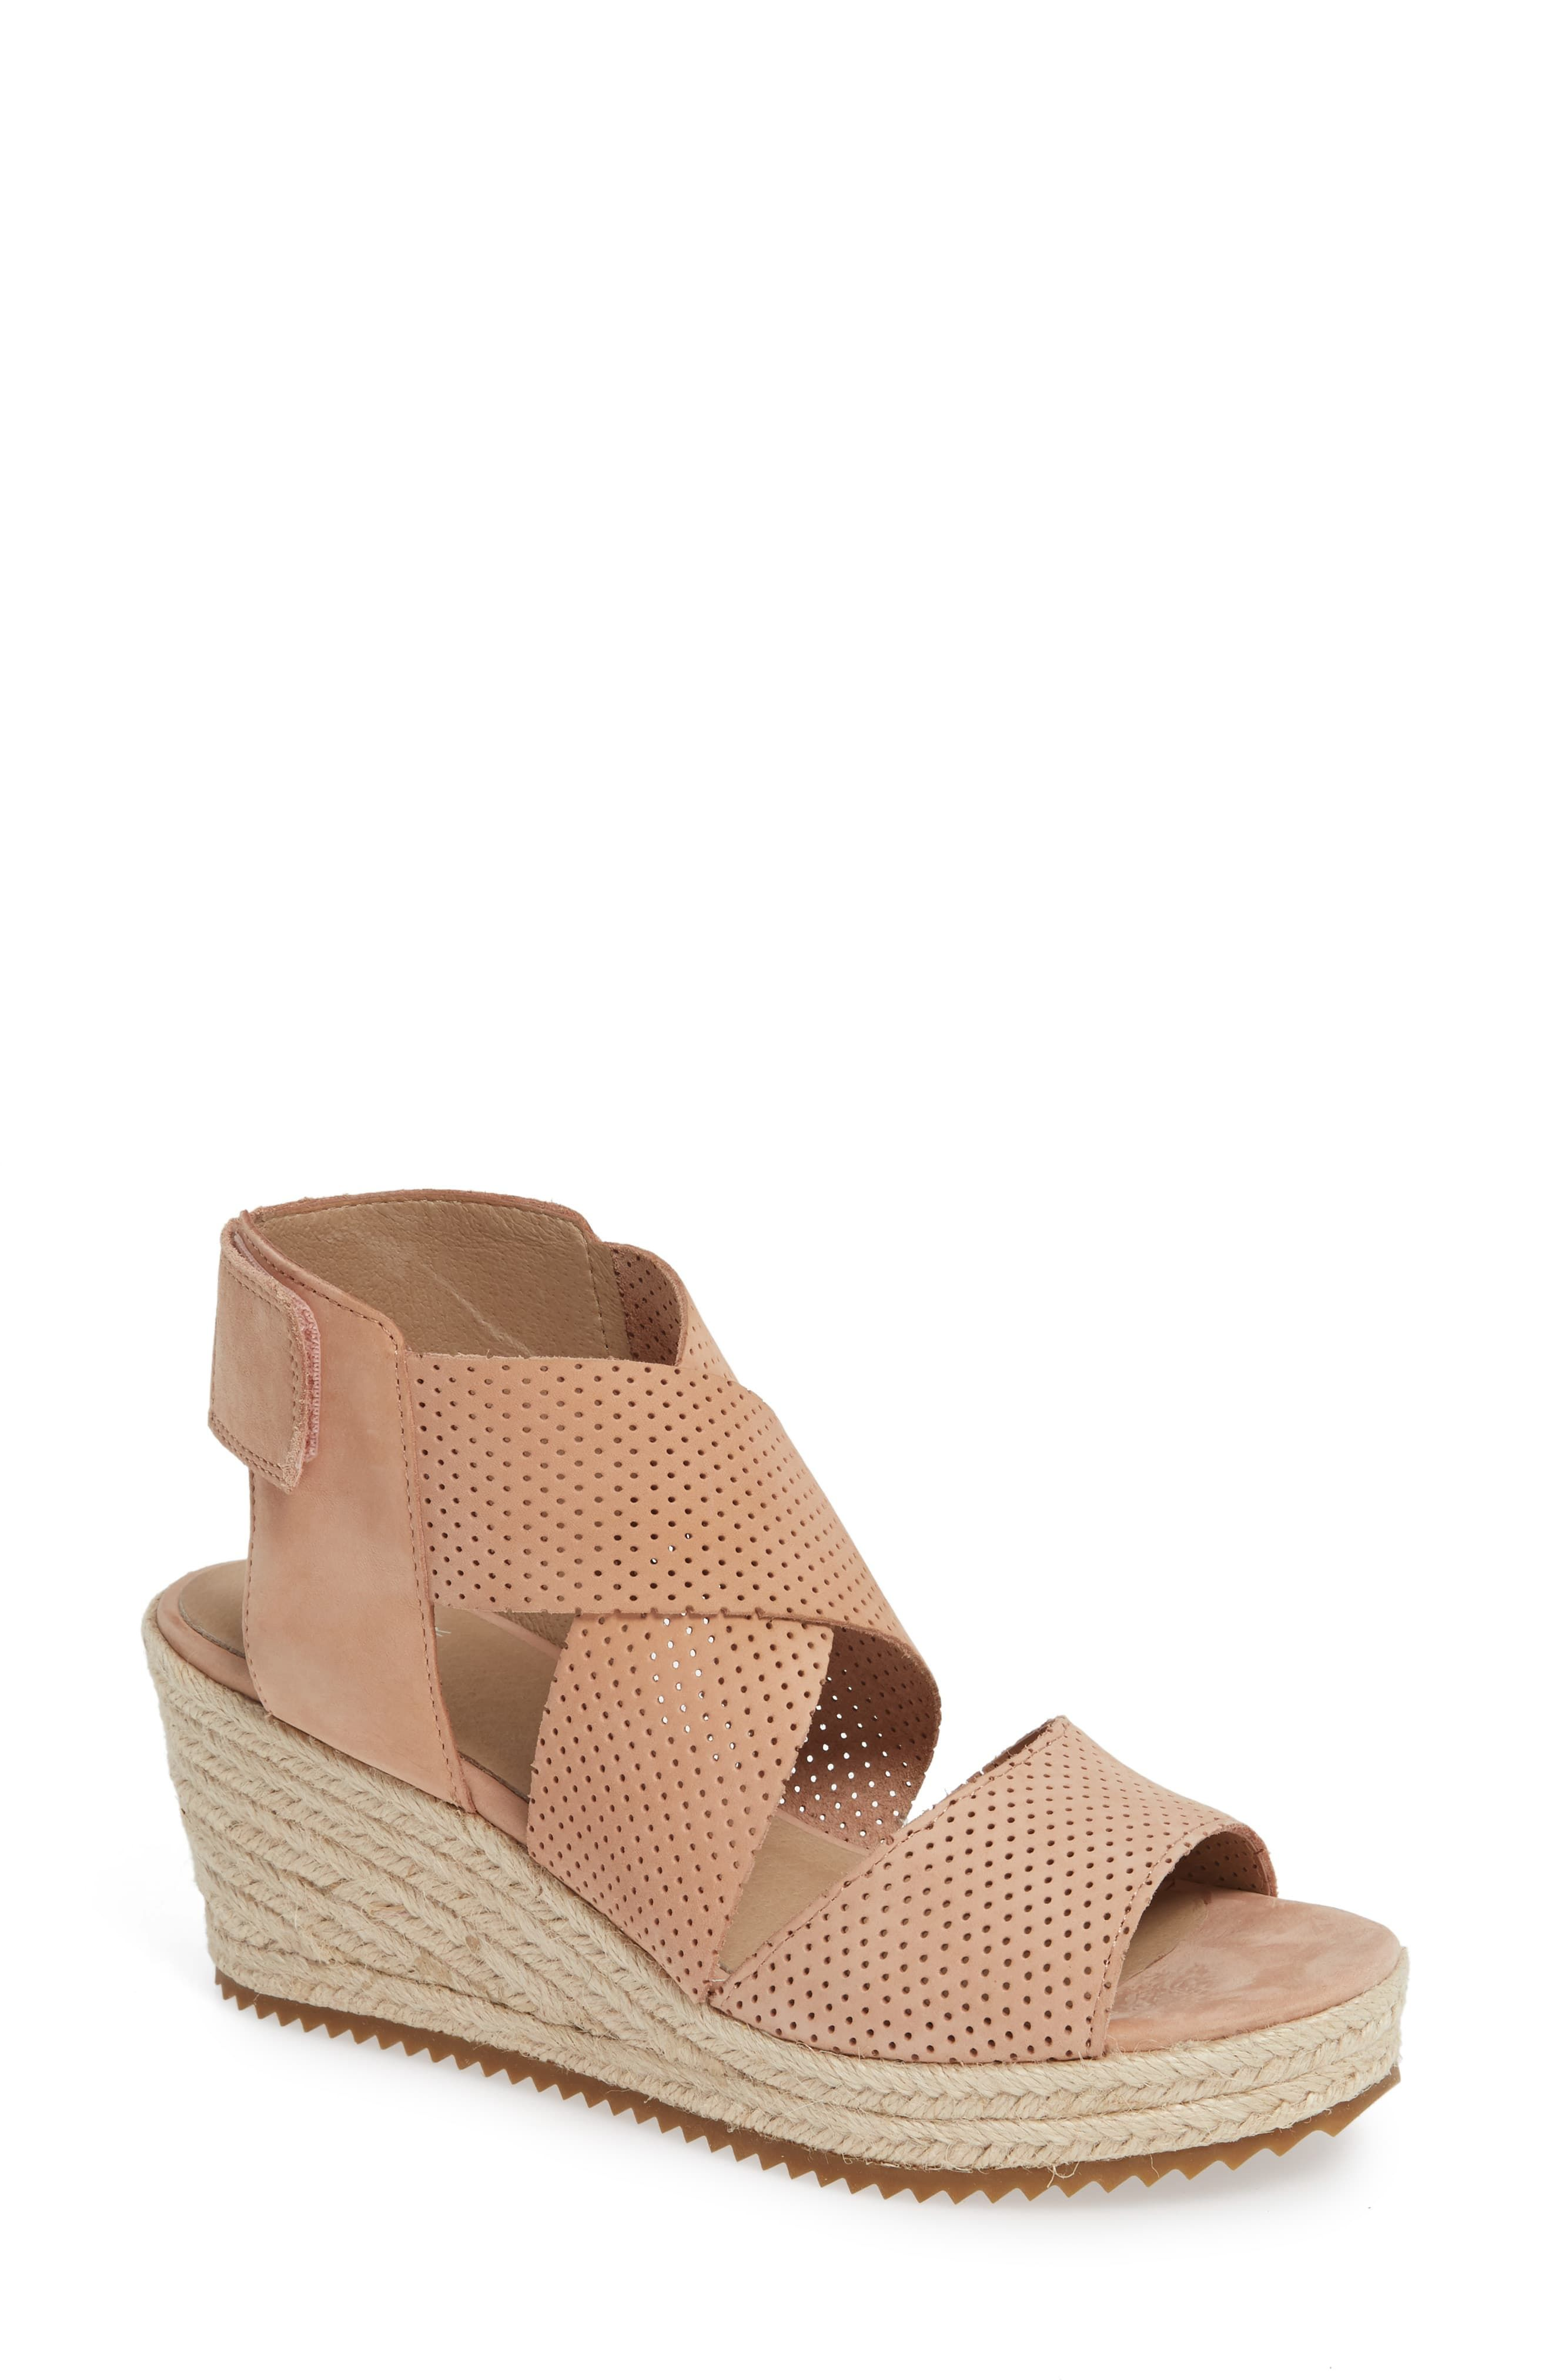 9f46a5bf01c Eileen Fisher 'Willow' Espadrille Wedge Sandal in 2019 | Products ...